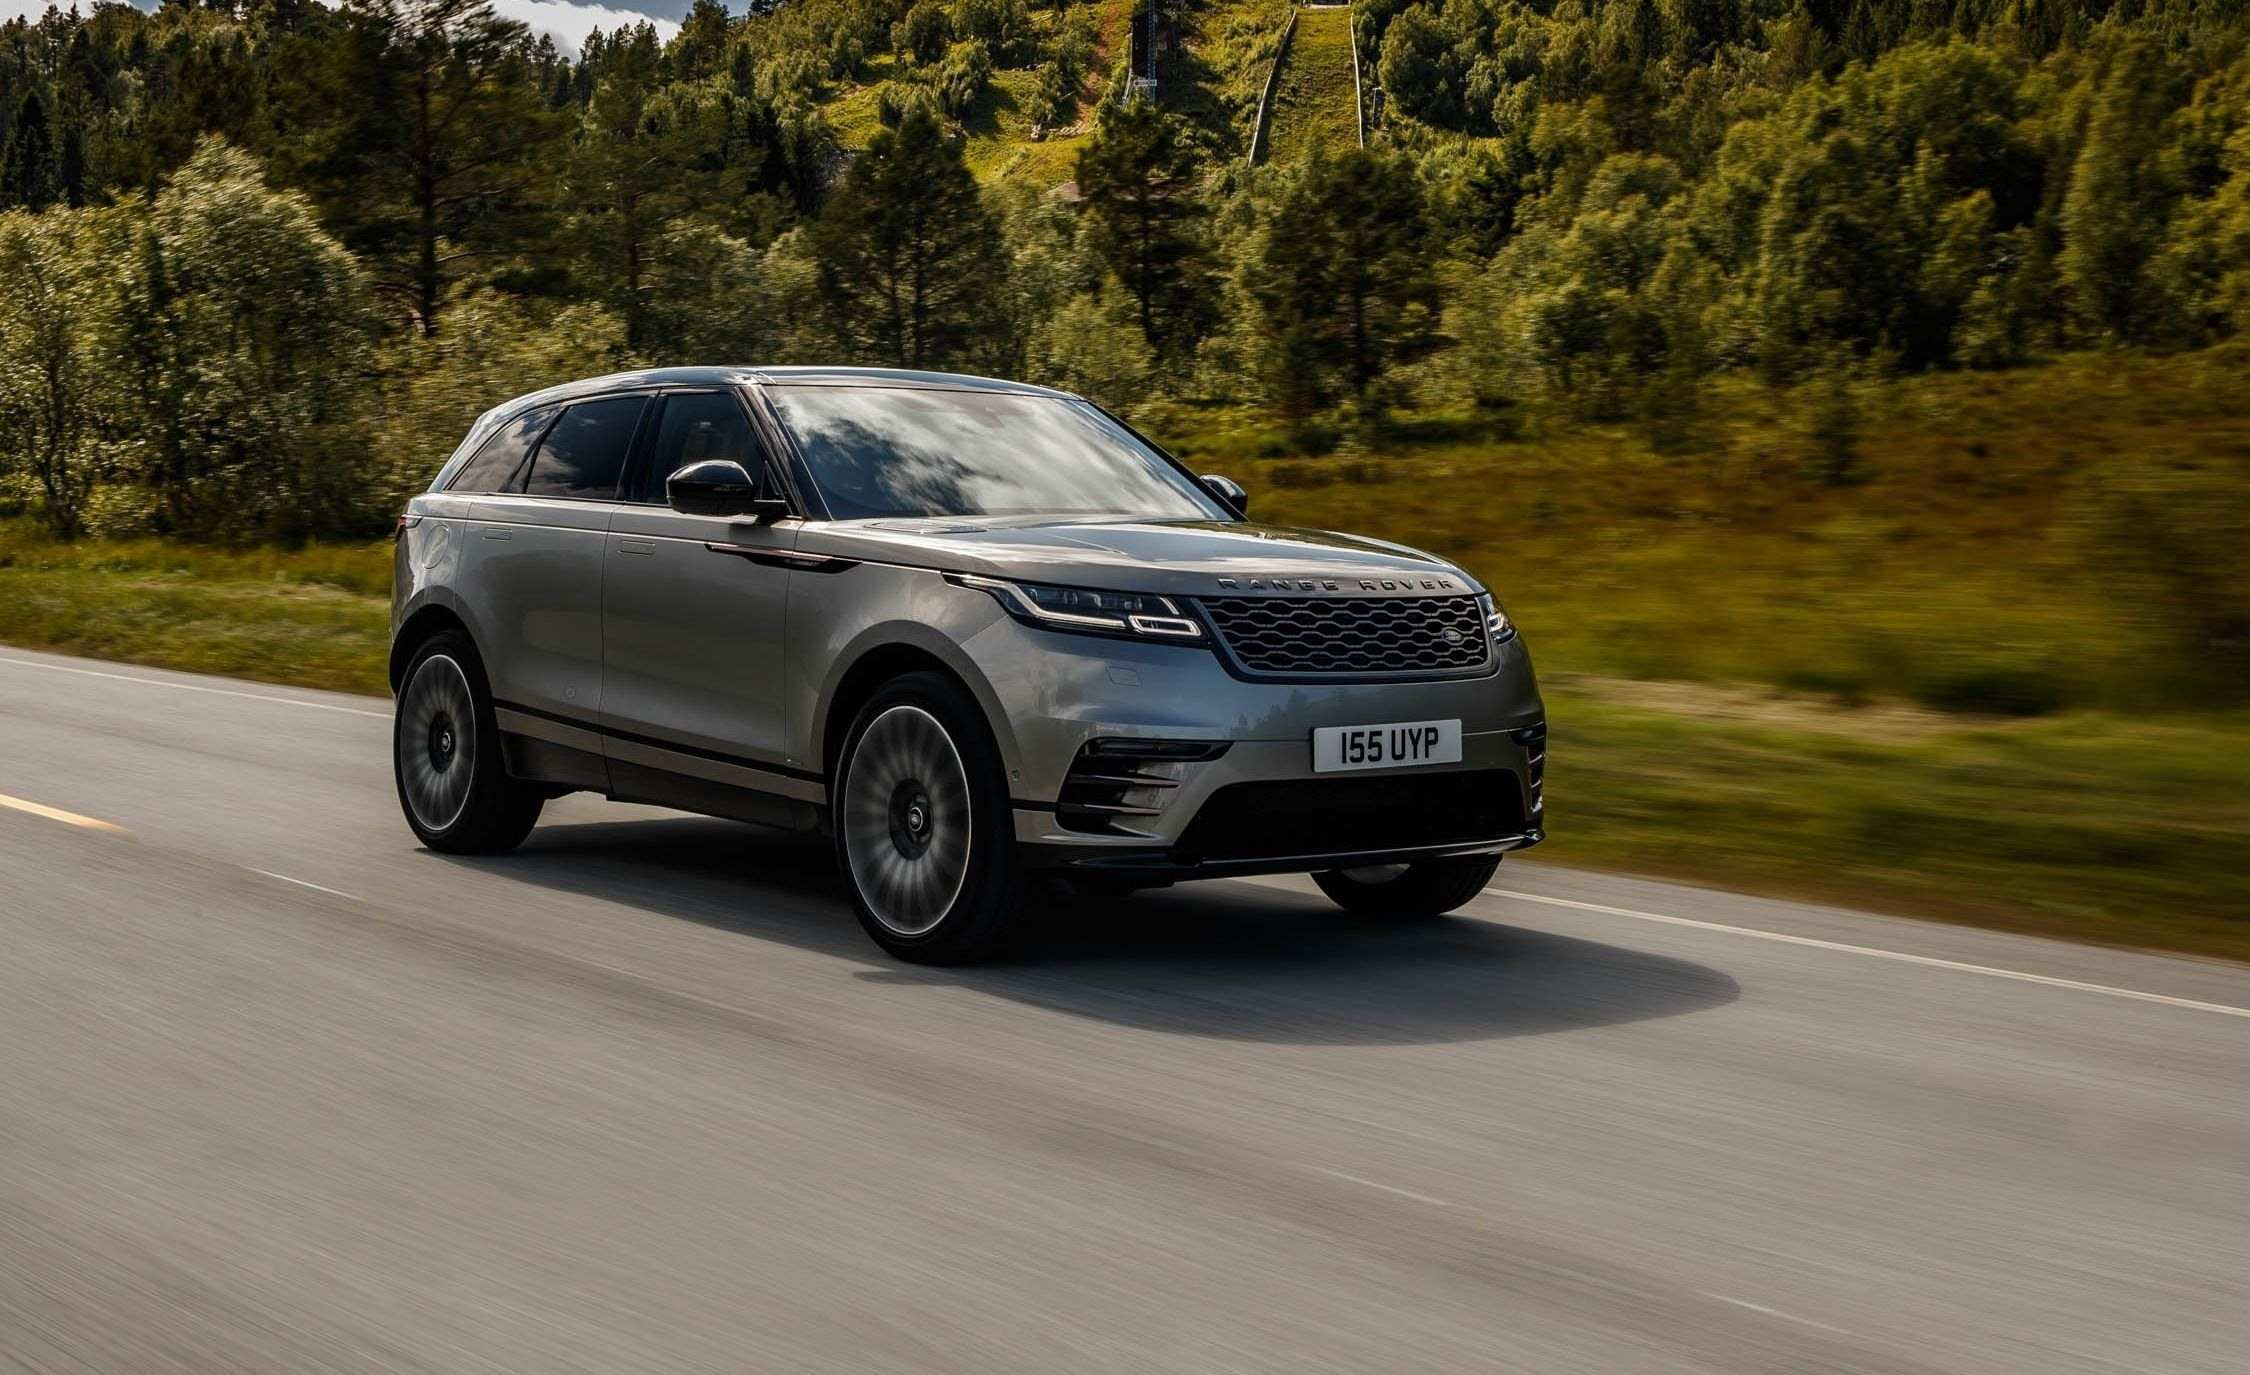 75 The 2020 Range Rover Evoque Xl Performance And New Engine